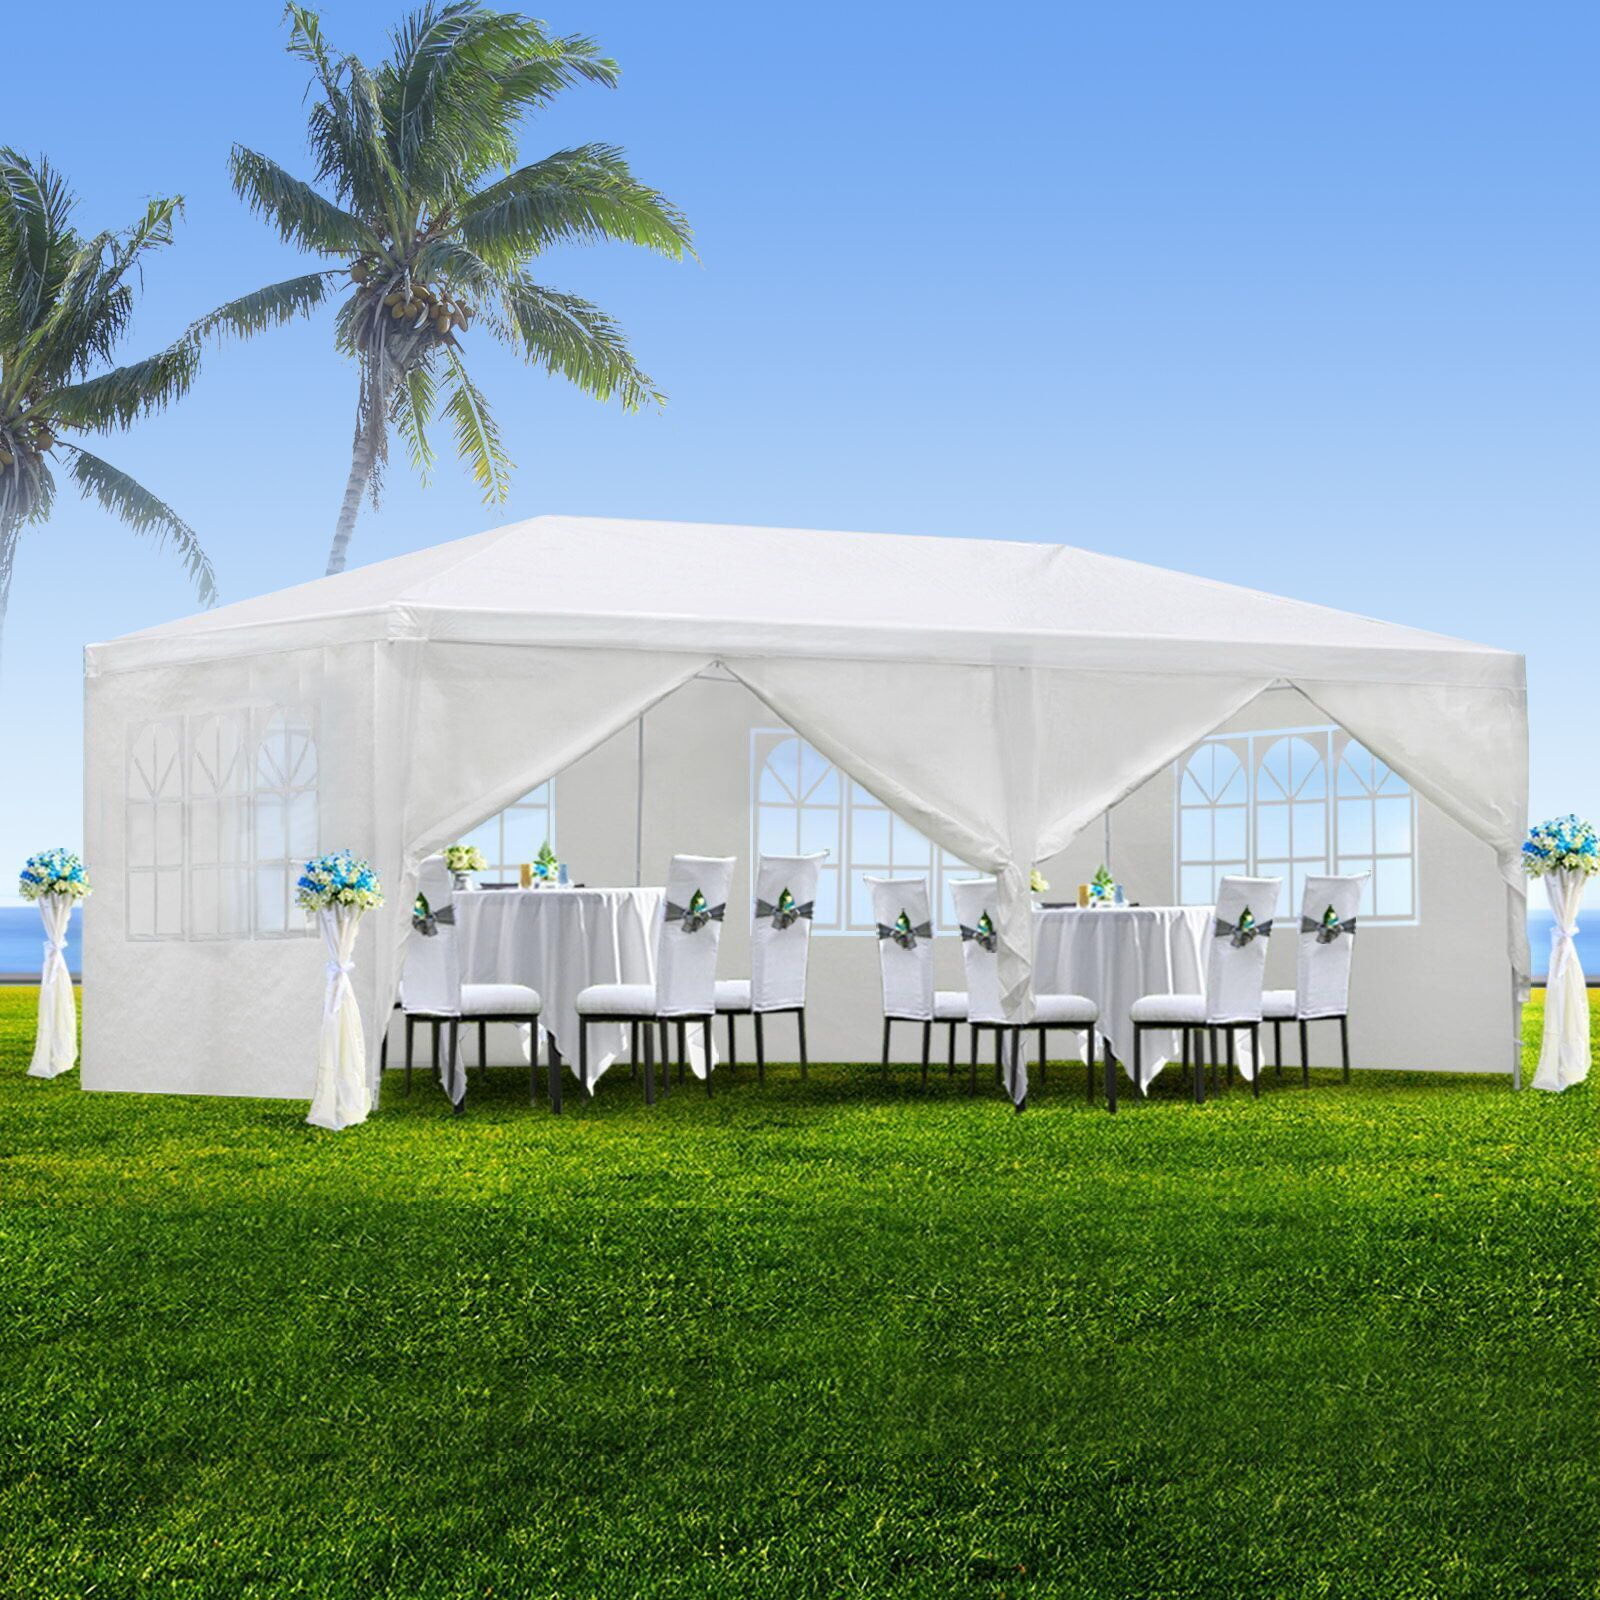 Zeny 10 X20 Outdoor Canopy Party Wedding Tent White Gazebo Pavilion With6 Side Walls Walmart Com In 2020 White Gazebo Canopy Outdoor Party Tent Wedding